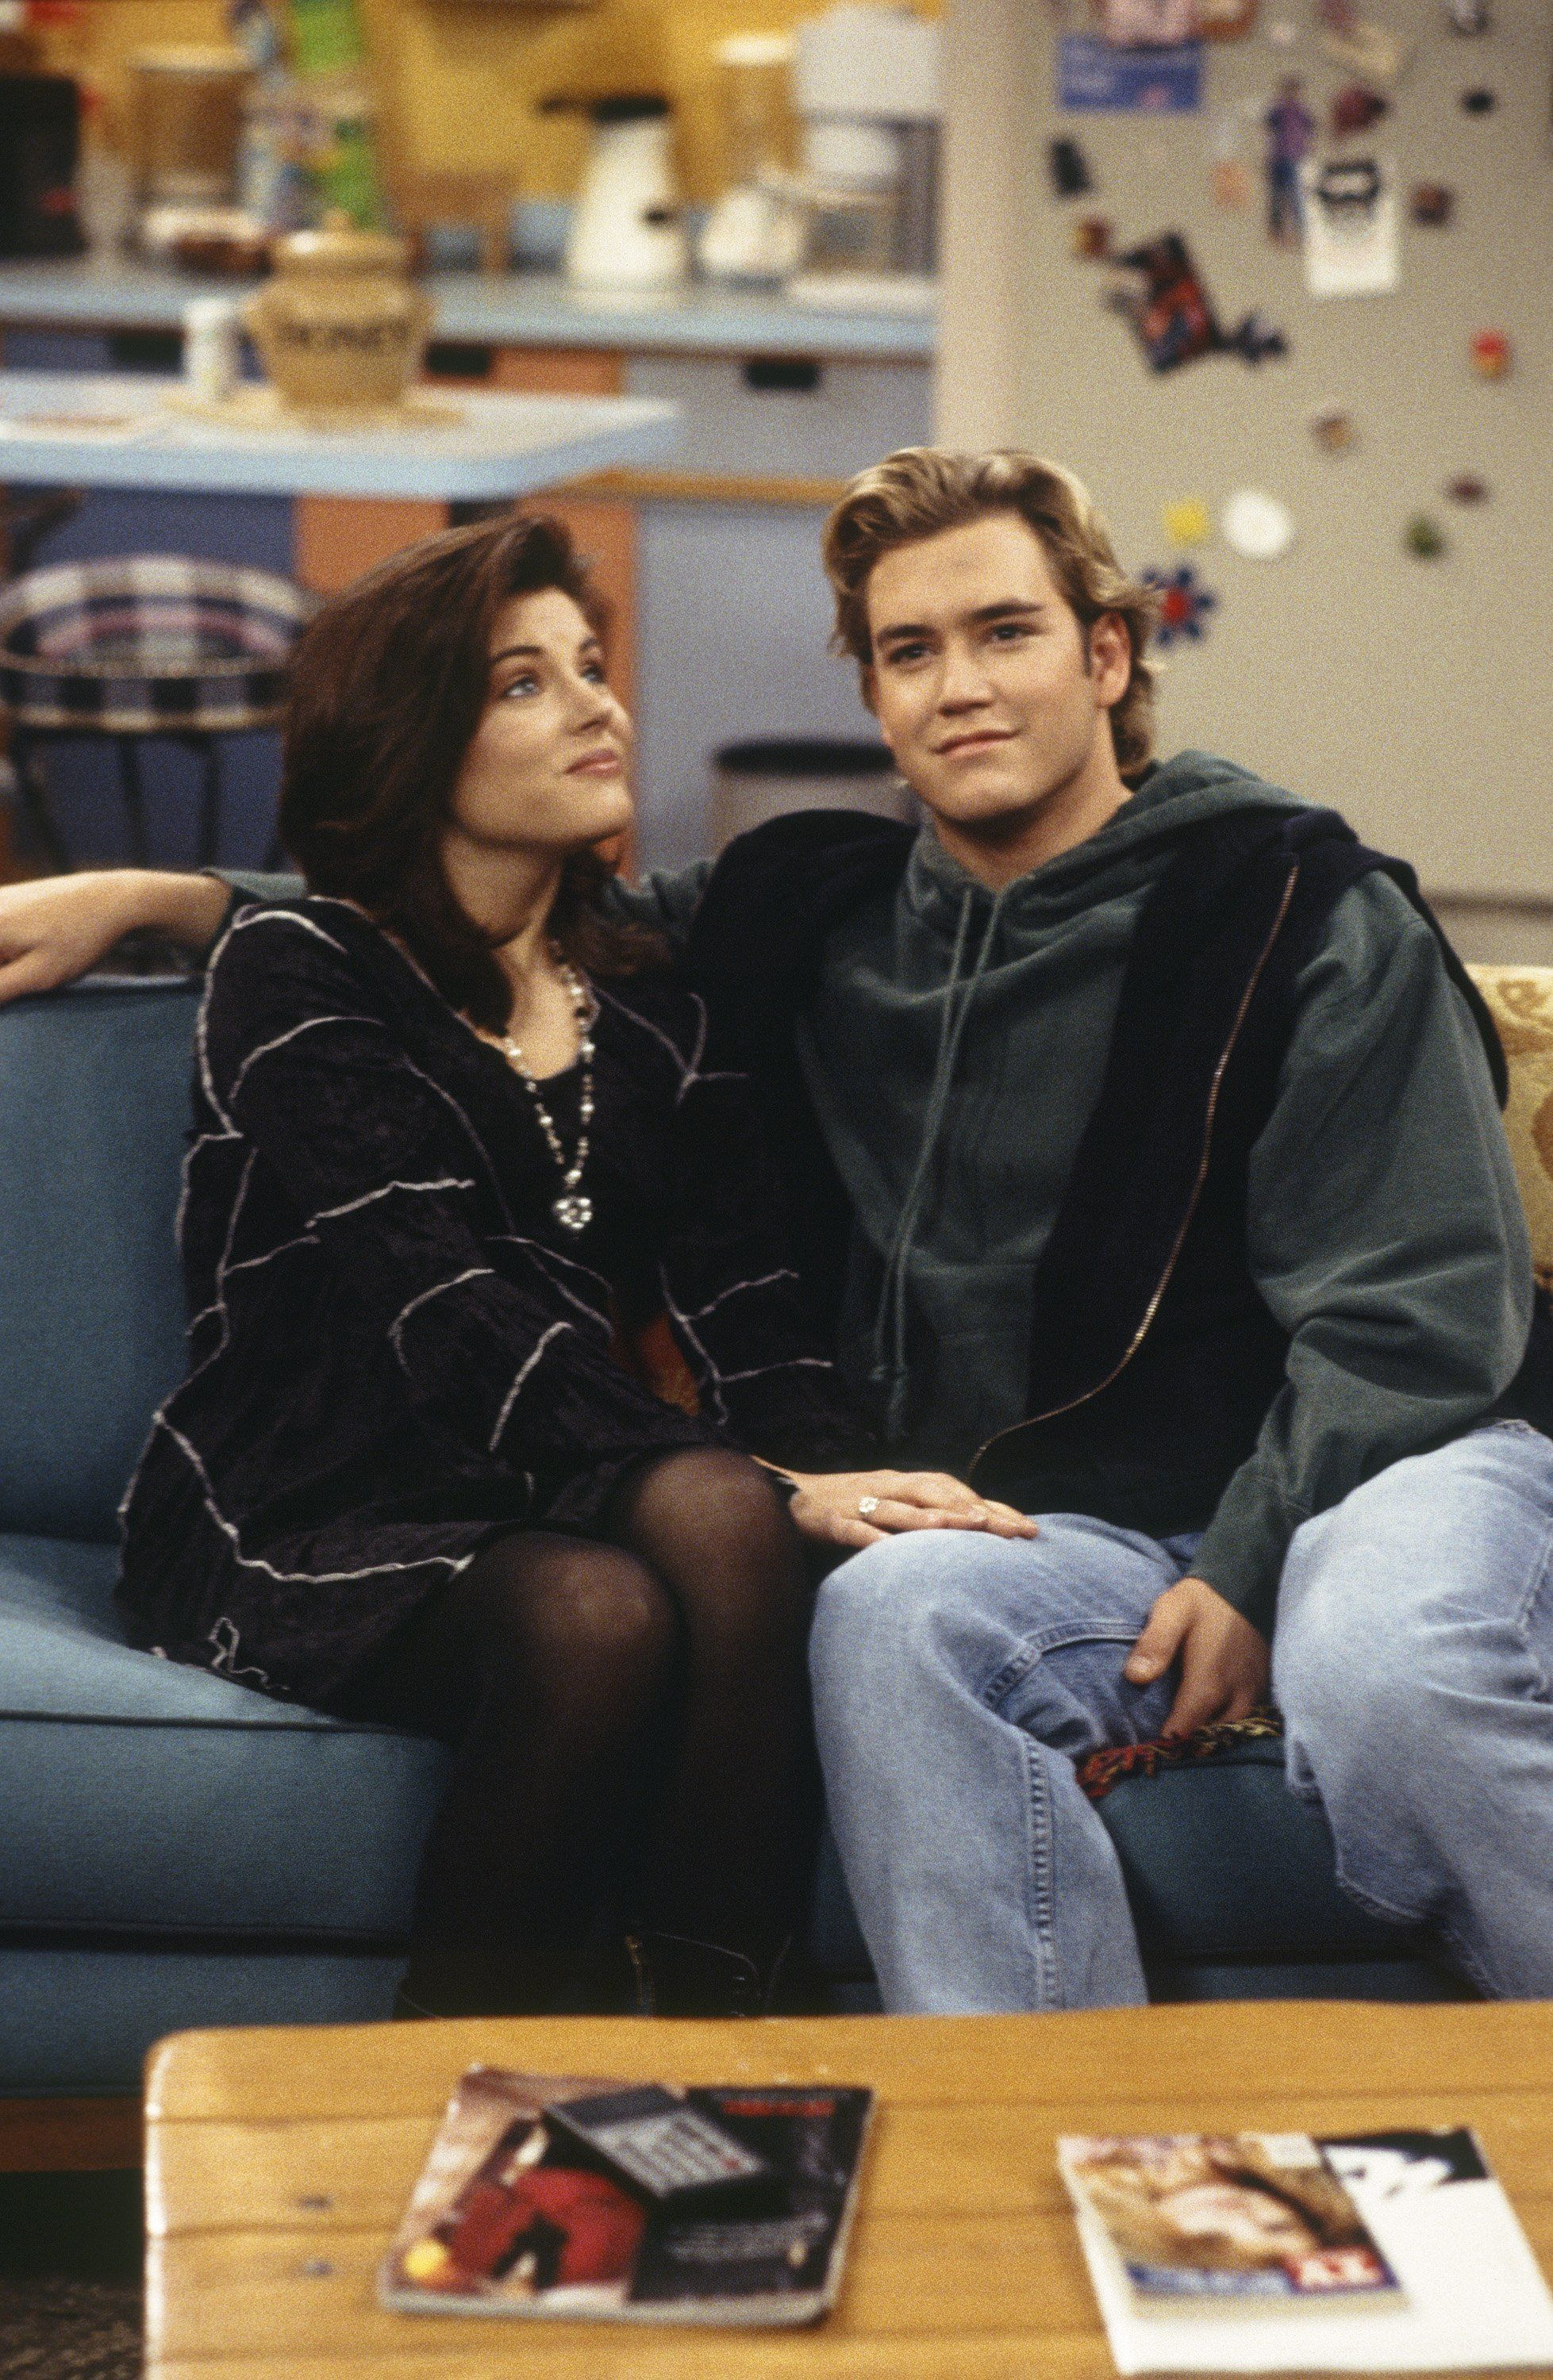 SAVED BY THE BELL: THE COLLEGE YEARS -- 'Wedding Plans' Episode 19 -- Air Date 02/08/1994 -- Pictured: (l-r) Tiffani Thiessen as Kelly Kapowski, Mark-Paul Gosselaar as Zack Morris -- Photo by: Frank Carroll/NBCU Photo Bank